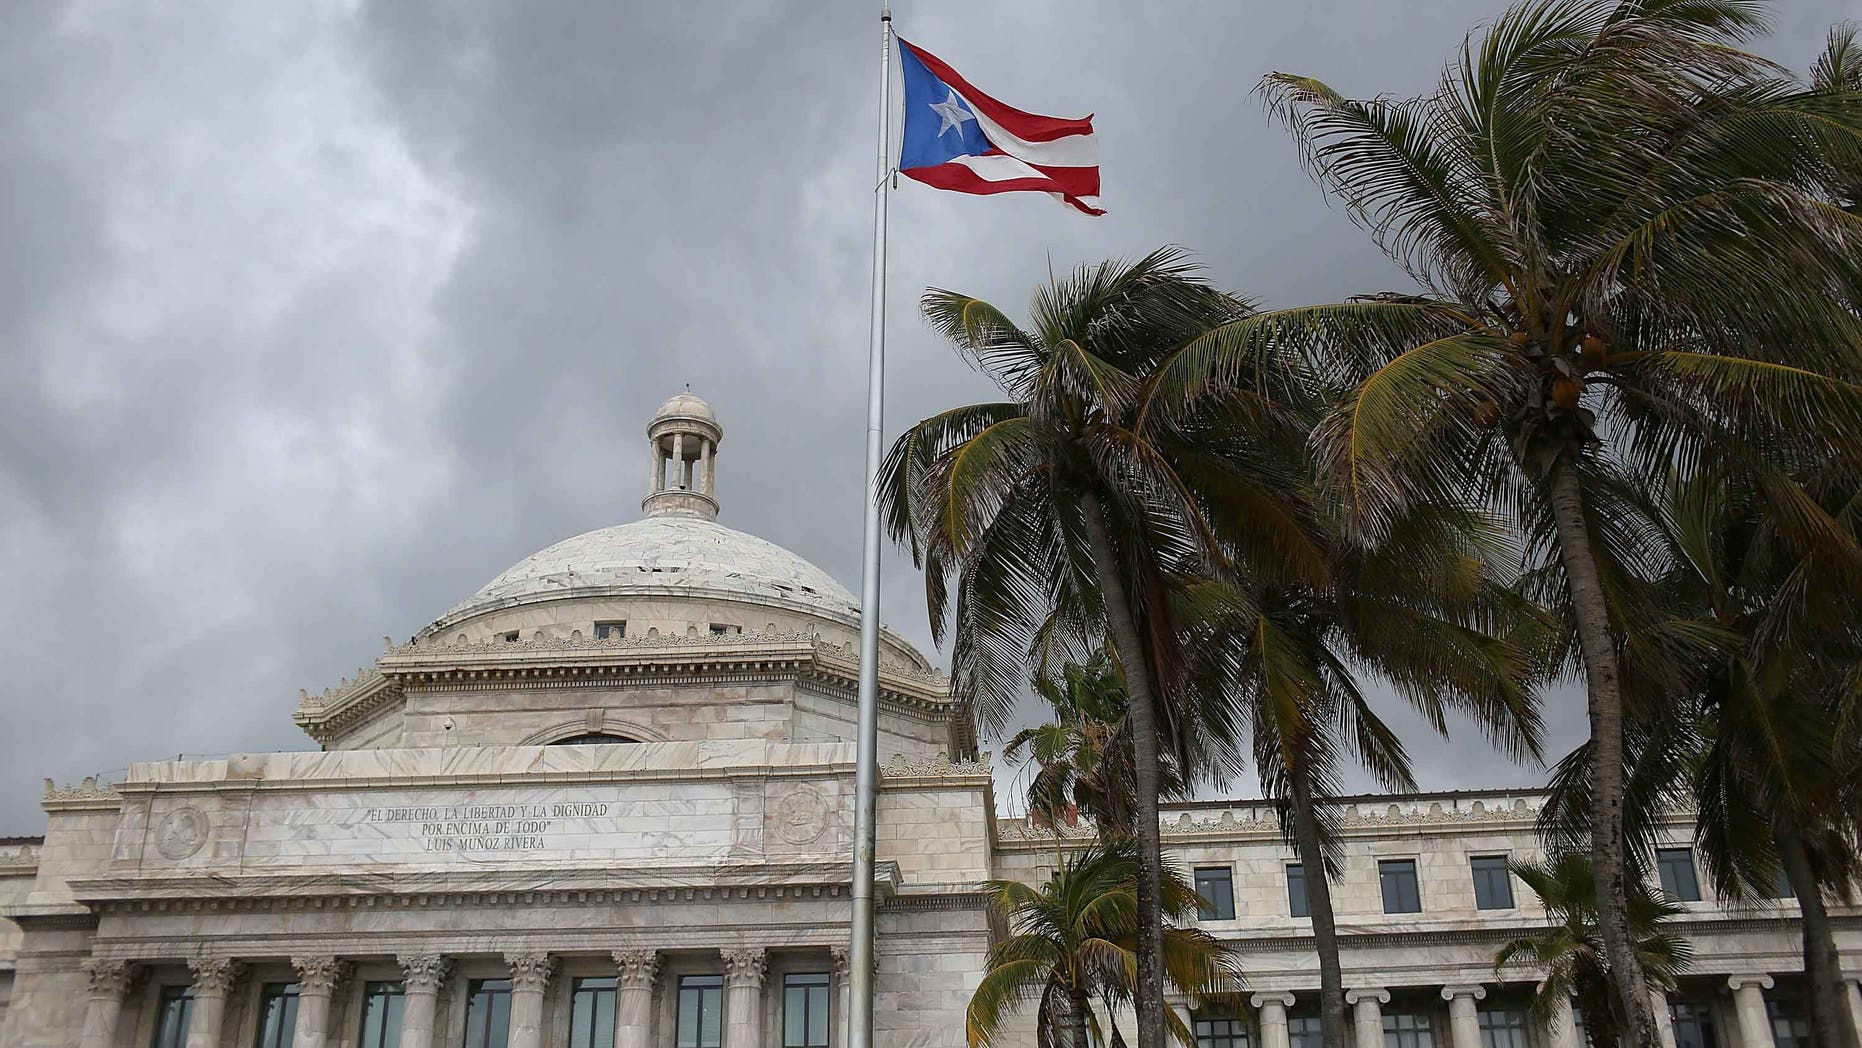 SAN JUAN, PUERTO RICO - JUNE 30:  The Puerto Rican flag flies above the Capitol a day after Puerto Rican Governor Alejandro Garcia Padilla gave a televised speech regarding the governments $72 billion debt on June 30, 2015 in San Juan, Puerto Rico.  The Governor said in his speech that the people will have to sacrifice and share in the responsibilities for pulling the island out of debt.  (Photo by Joe Raedle/Getty Images)